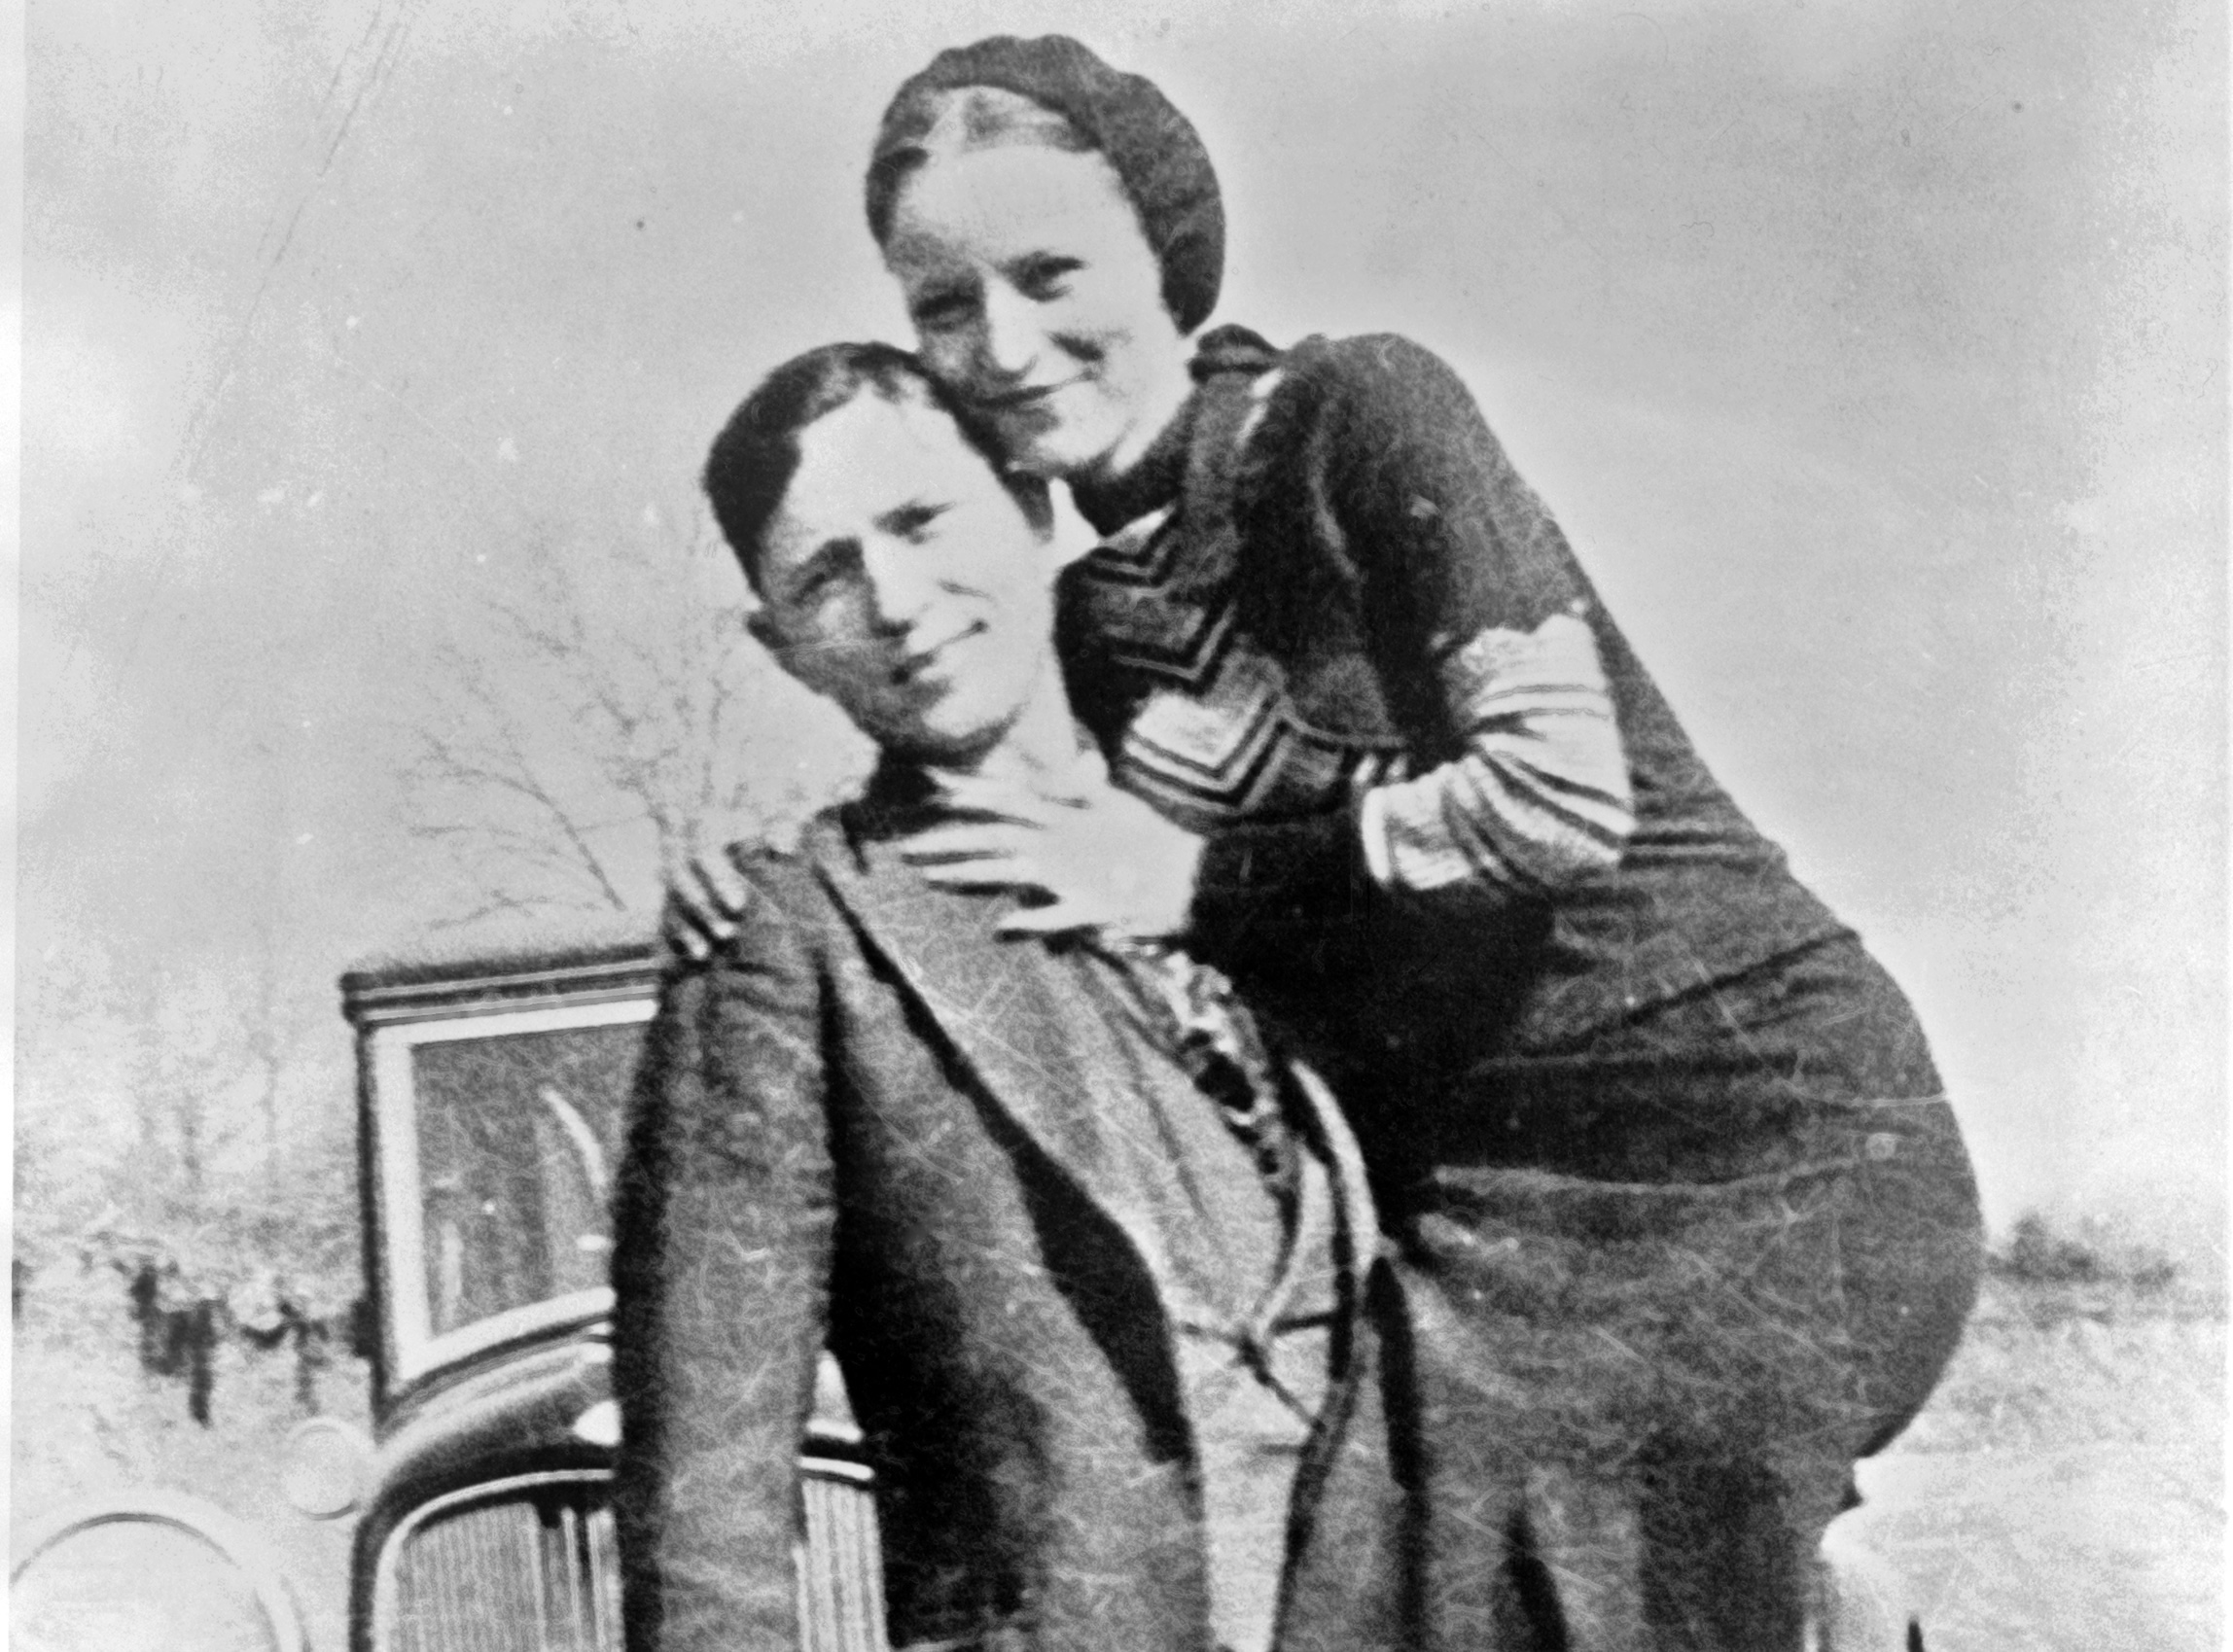 Possibly the most famous and most romanticized criminals in American history, Bonnie Parker and Clyde Barrow